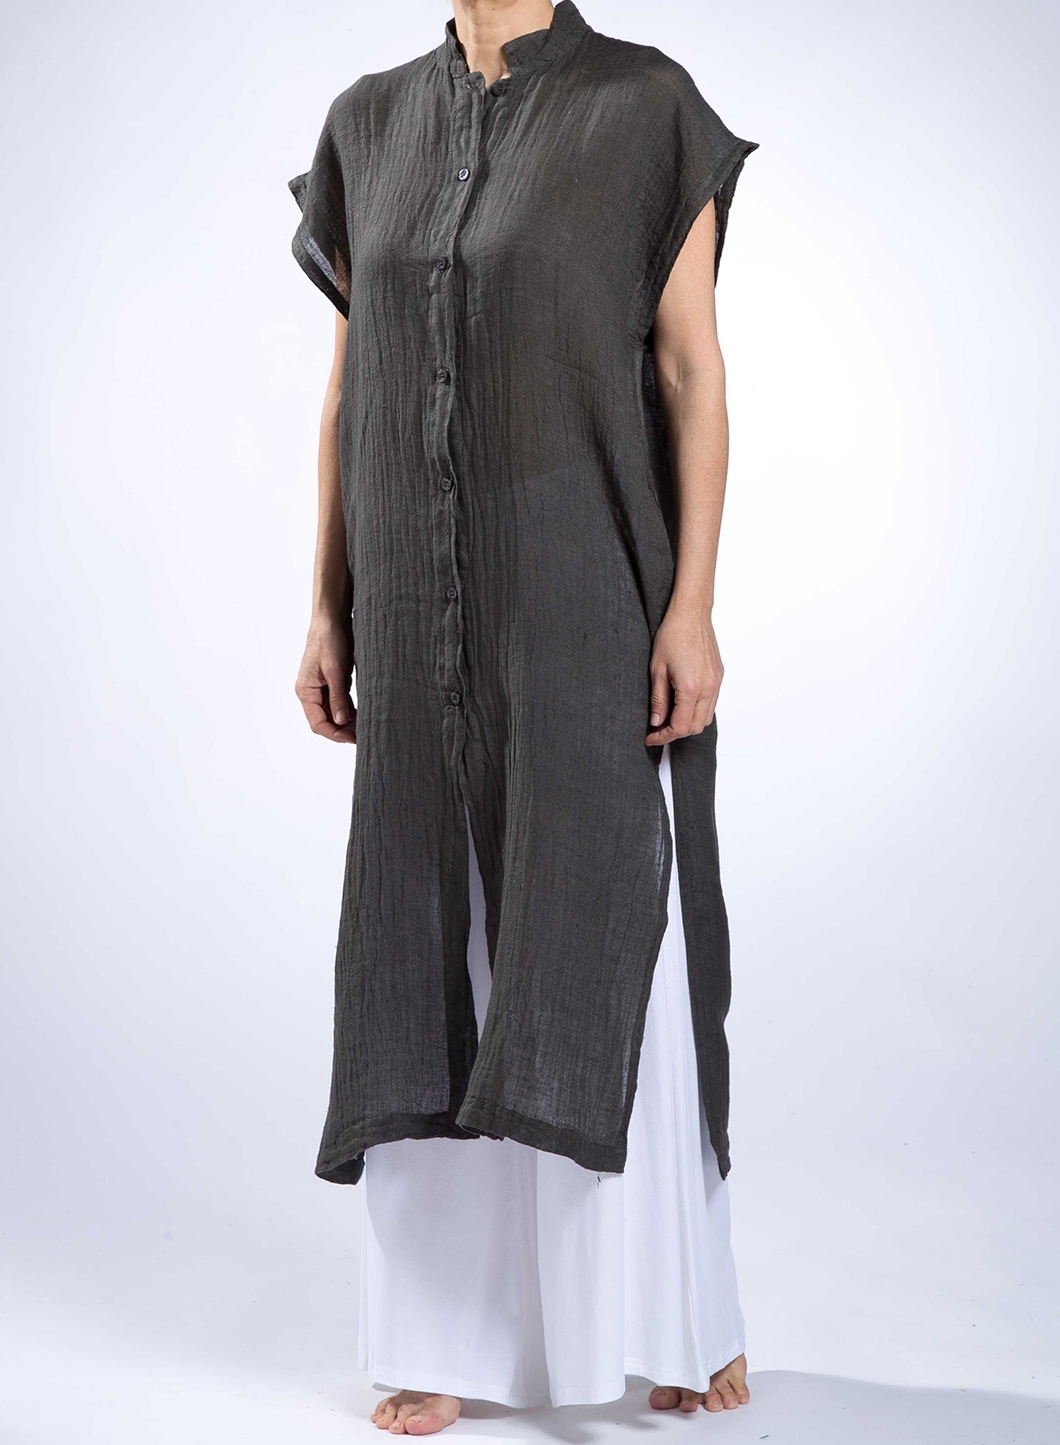 8c73d9714f88 Dress Semizie Square Sleeveless 100% Linen - JOIN CLOTHES